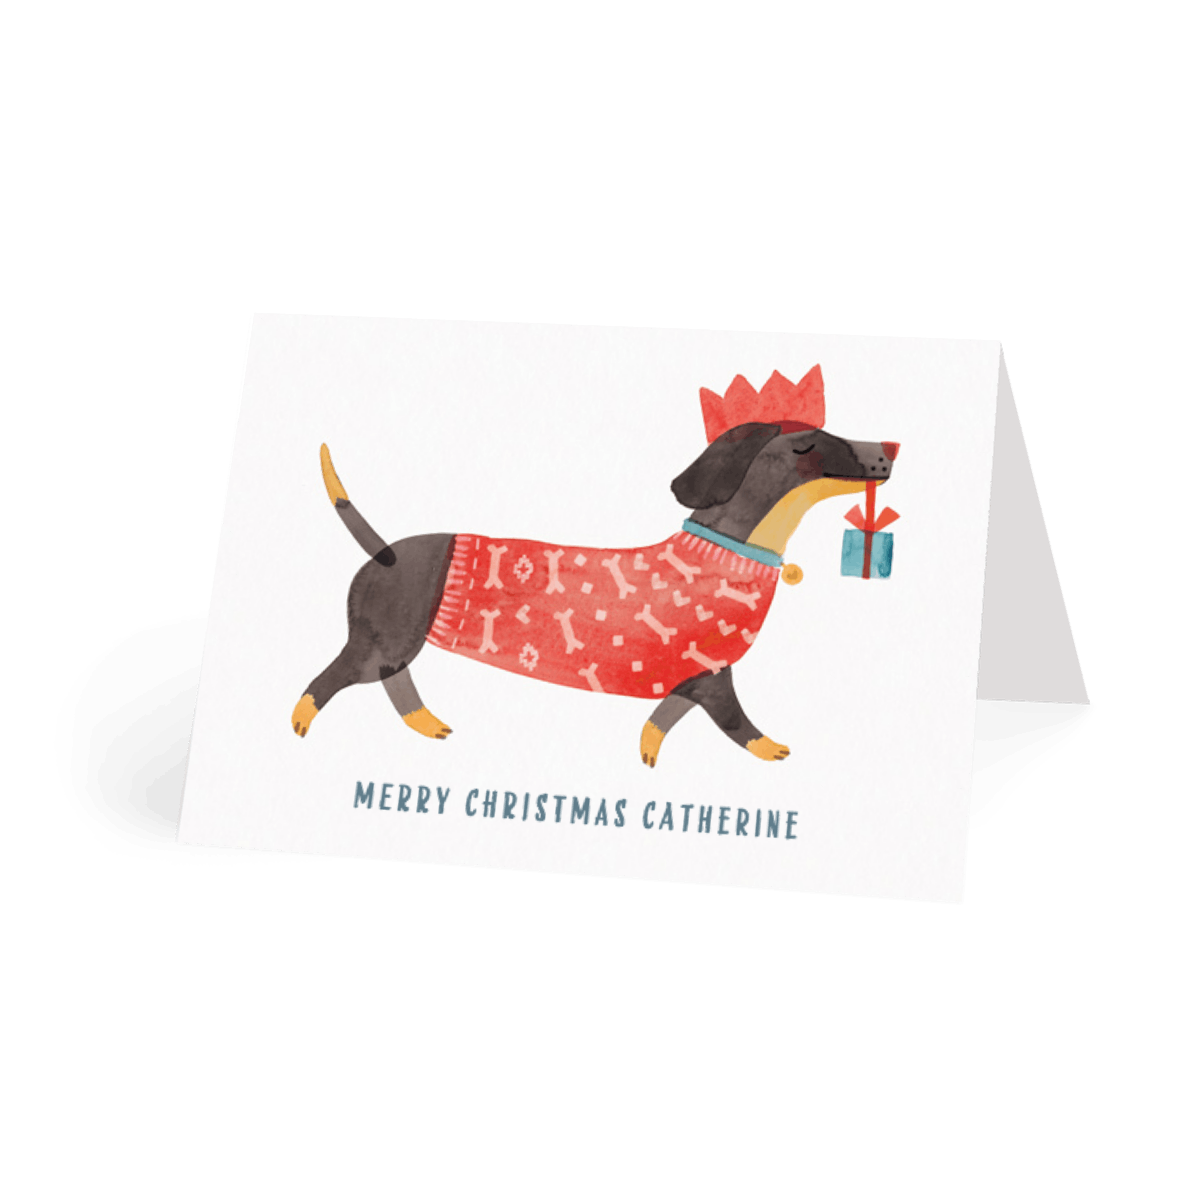 Https%3a%2f%2fwww.papier.com%2fproduct image%2f28846%2f14%2fchristmas dachshund 7240 front 1570560338.png?ixlib=rb 1.1